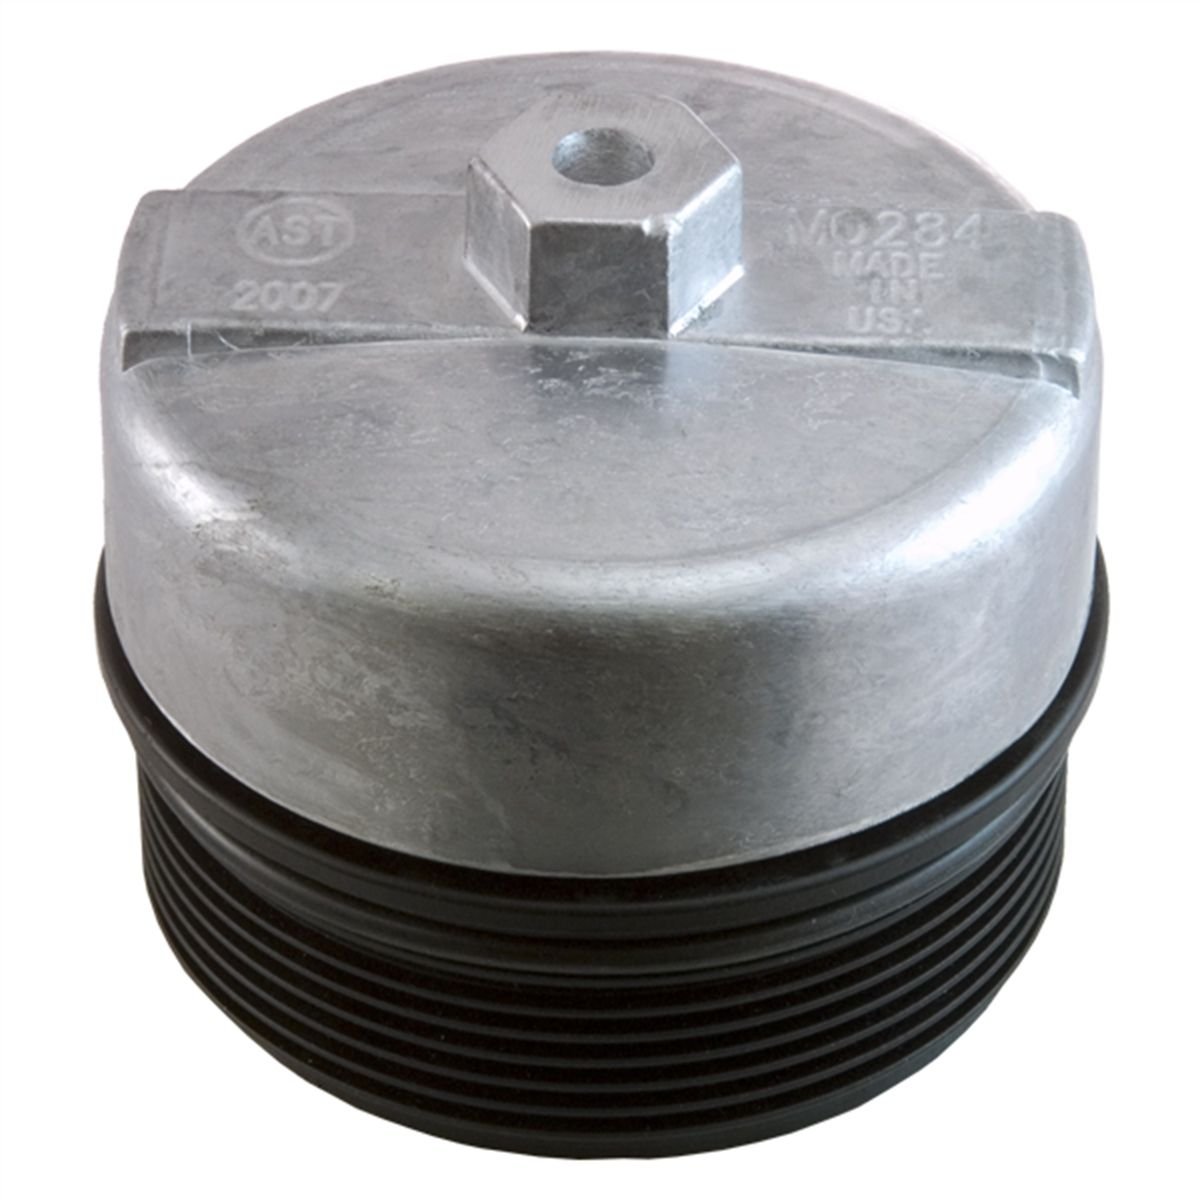 hight resolution of oil filter wrench mercedes dodge sprinter jeep grand cheroke